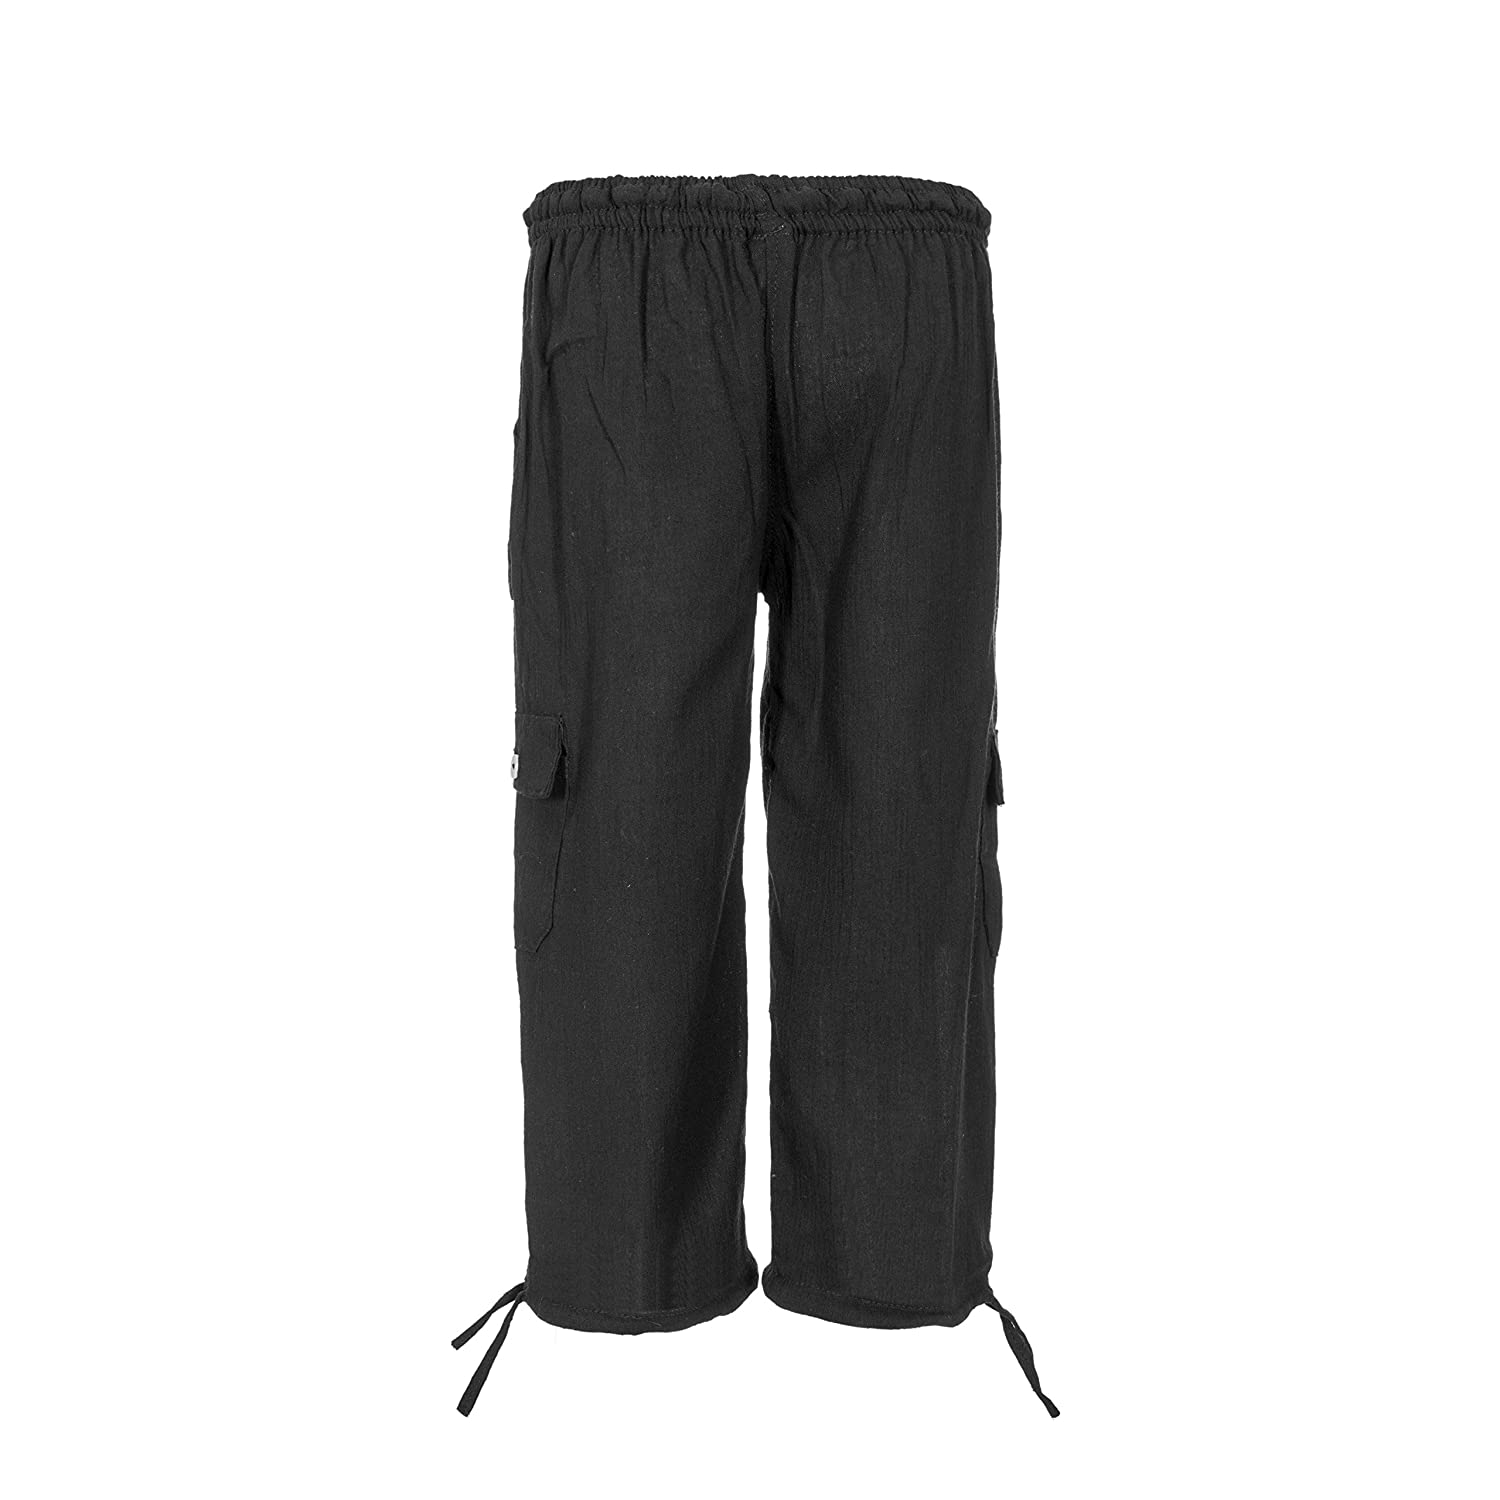 100/% Cotton Breathable Comfortable Fabric Tumia LAC Lightweight Childrens Trousers Various Colours Elasticated Drawstring Waist